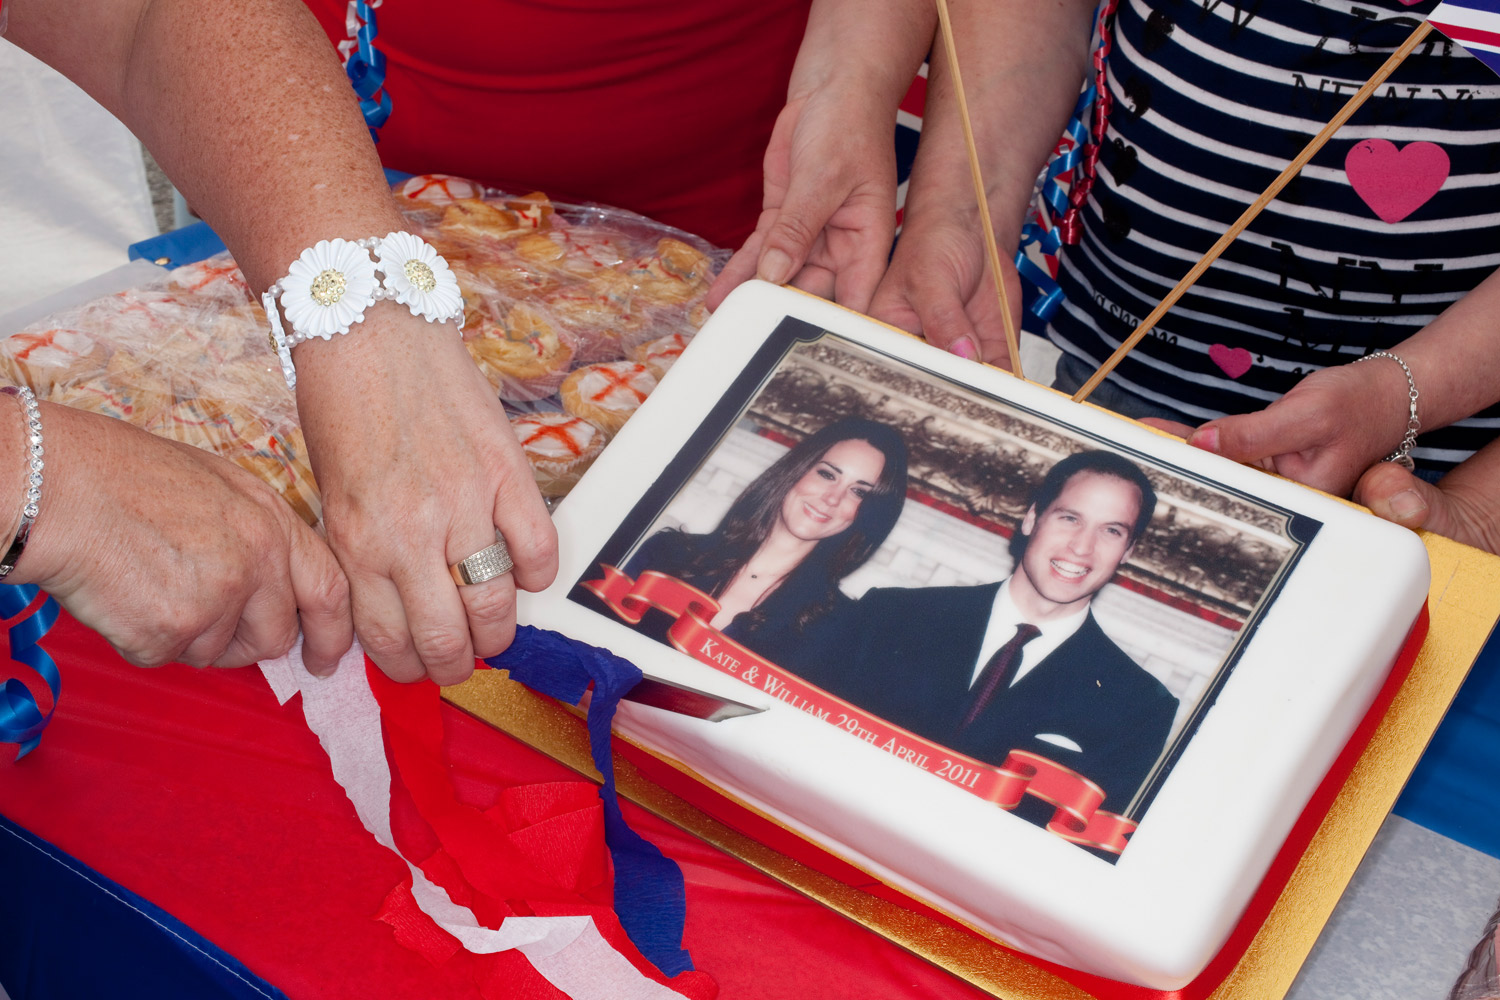 Cutting a cake celebrating the Royal wedding on Clare Road in Walsall, England.